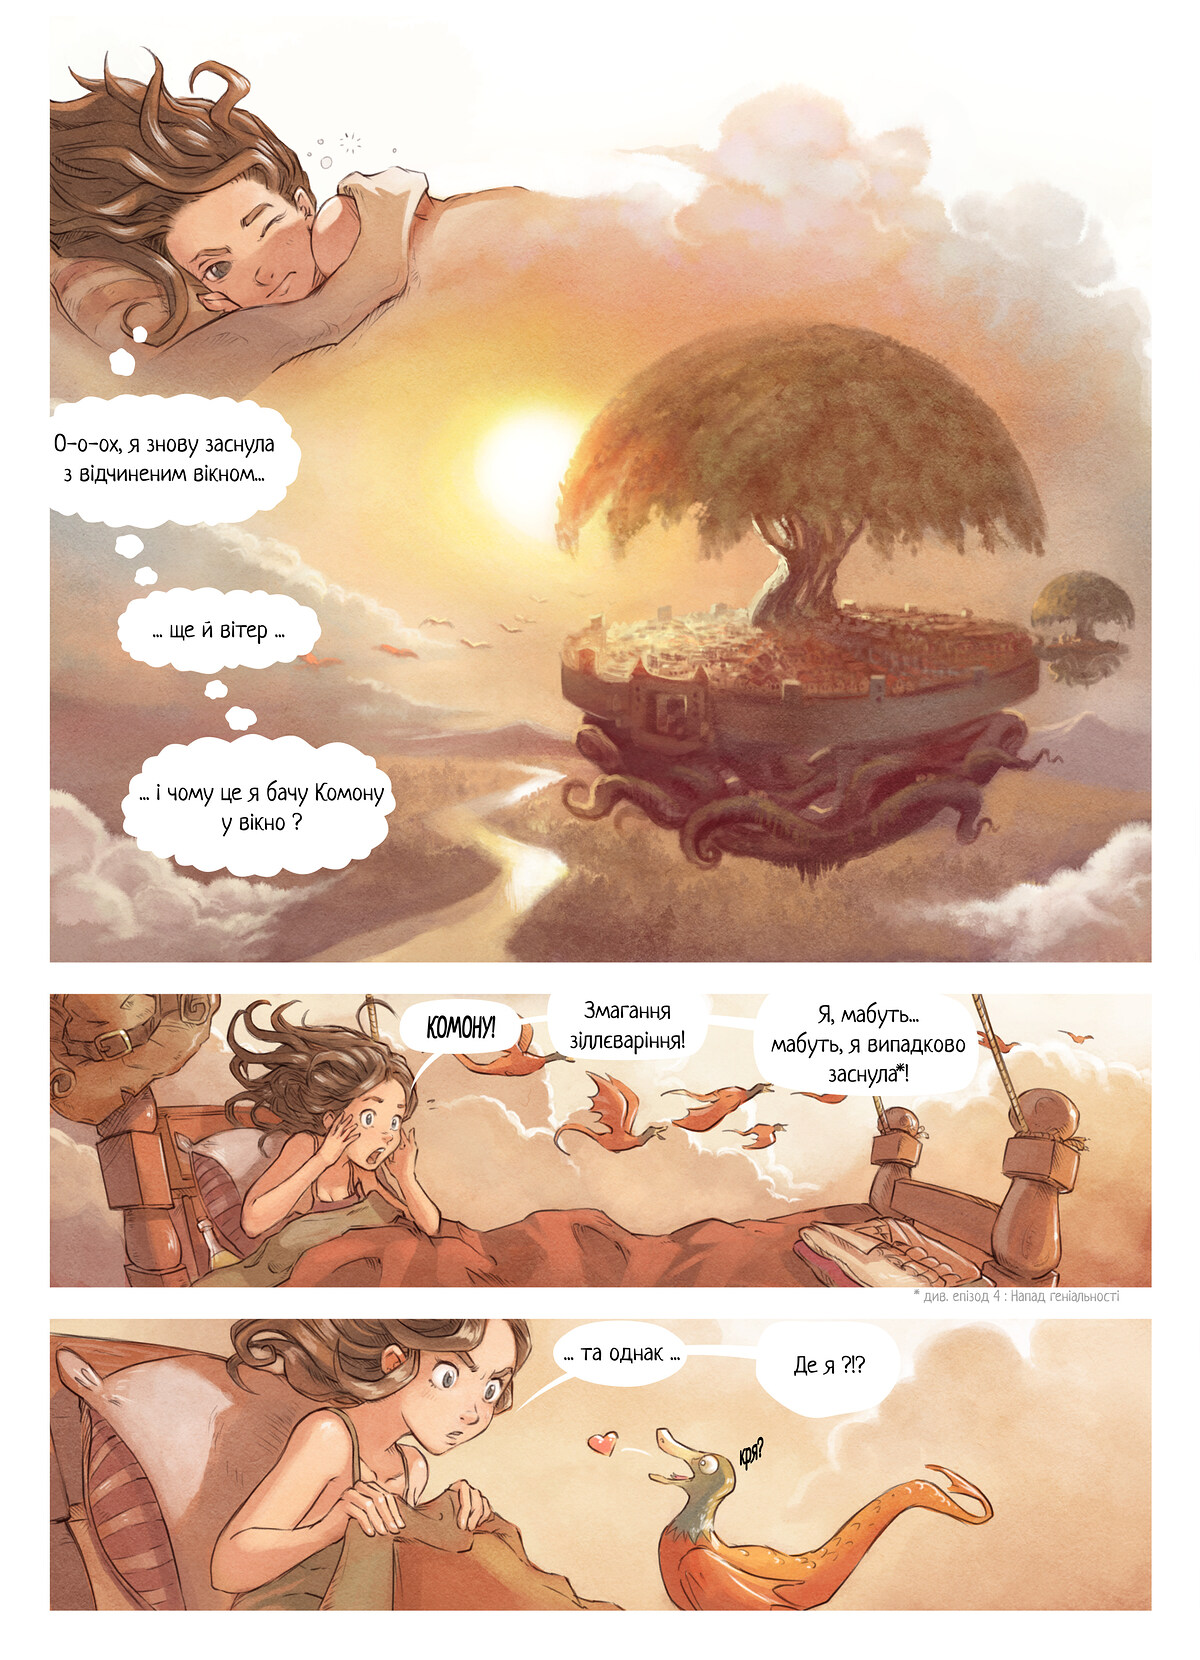 A webcomic page of Pepper&Carrot, епізод 6 [uk], стор. 1